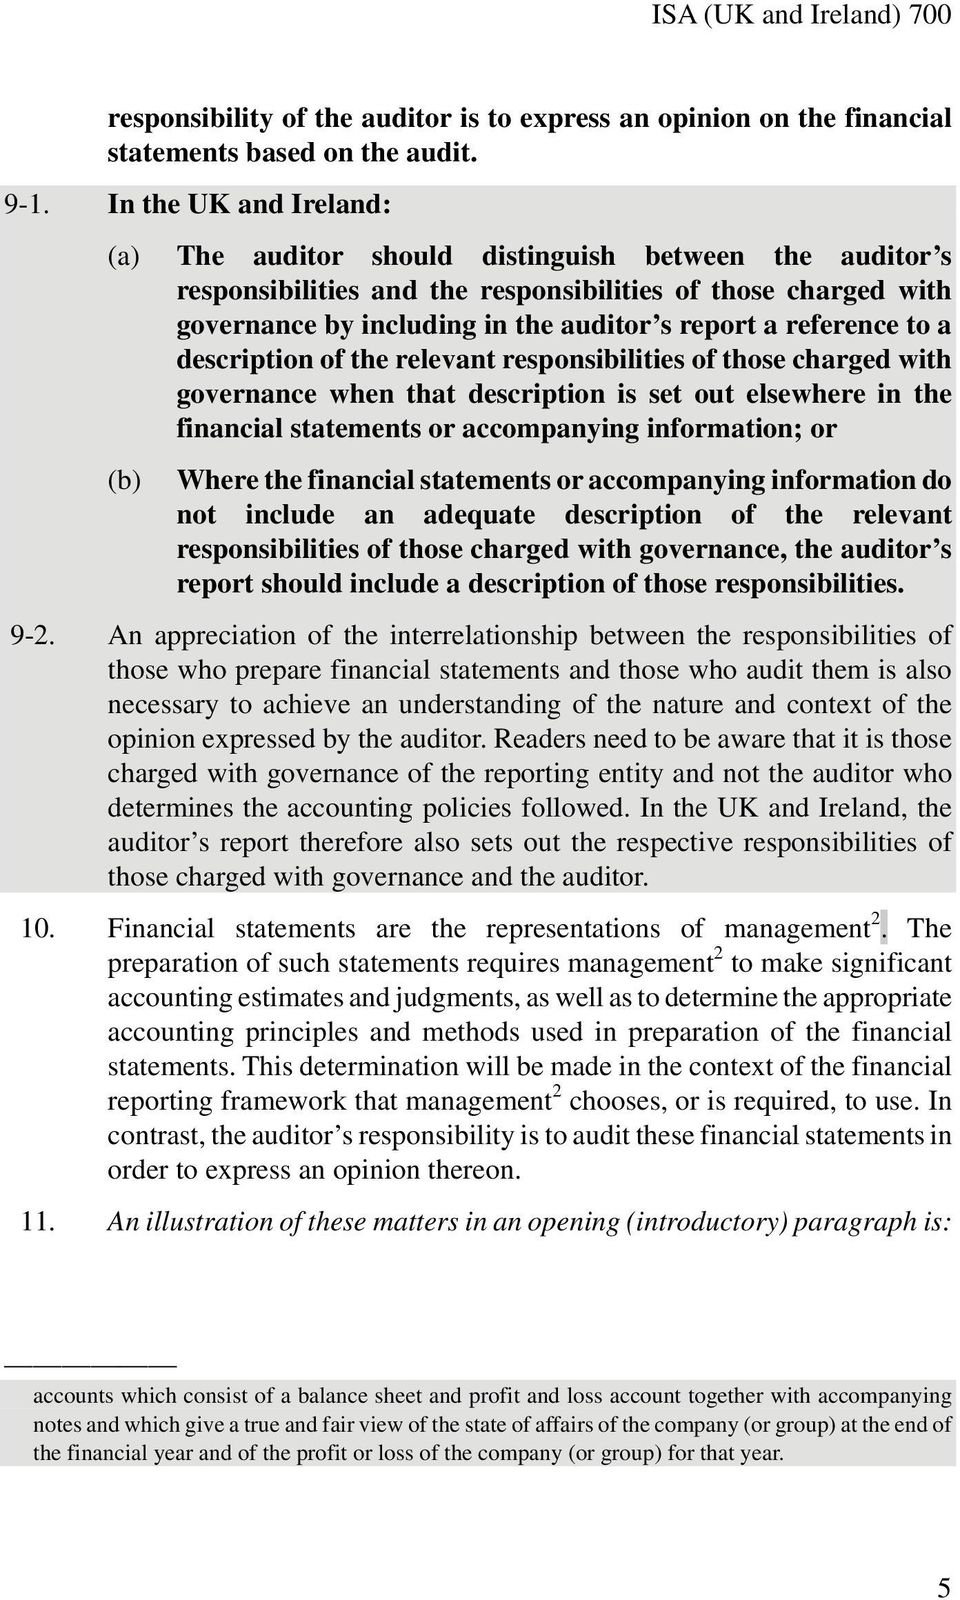 reference to a description of the relevant responsibilities of those charged with governance when that description is set out elsewhere in the financial statements or accompanying information; or